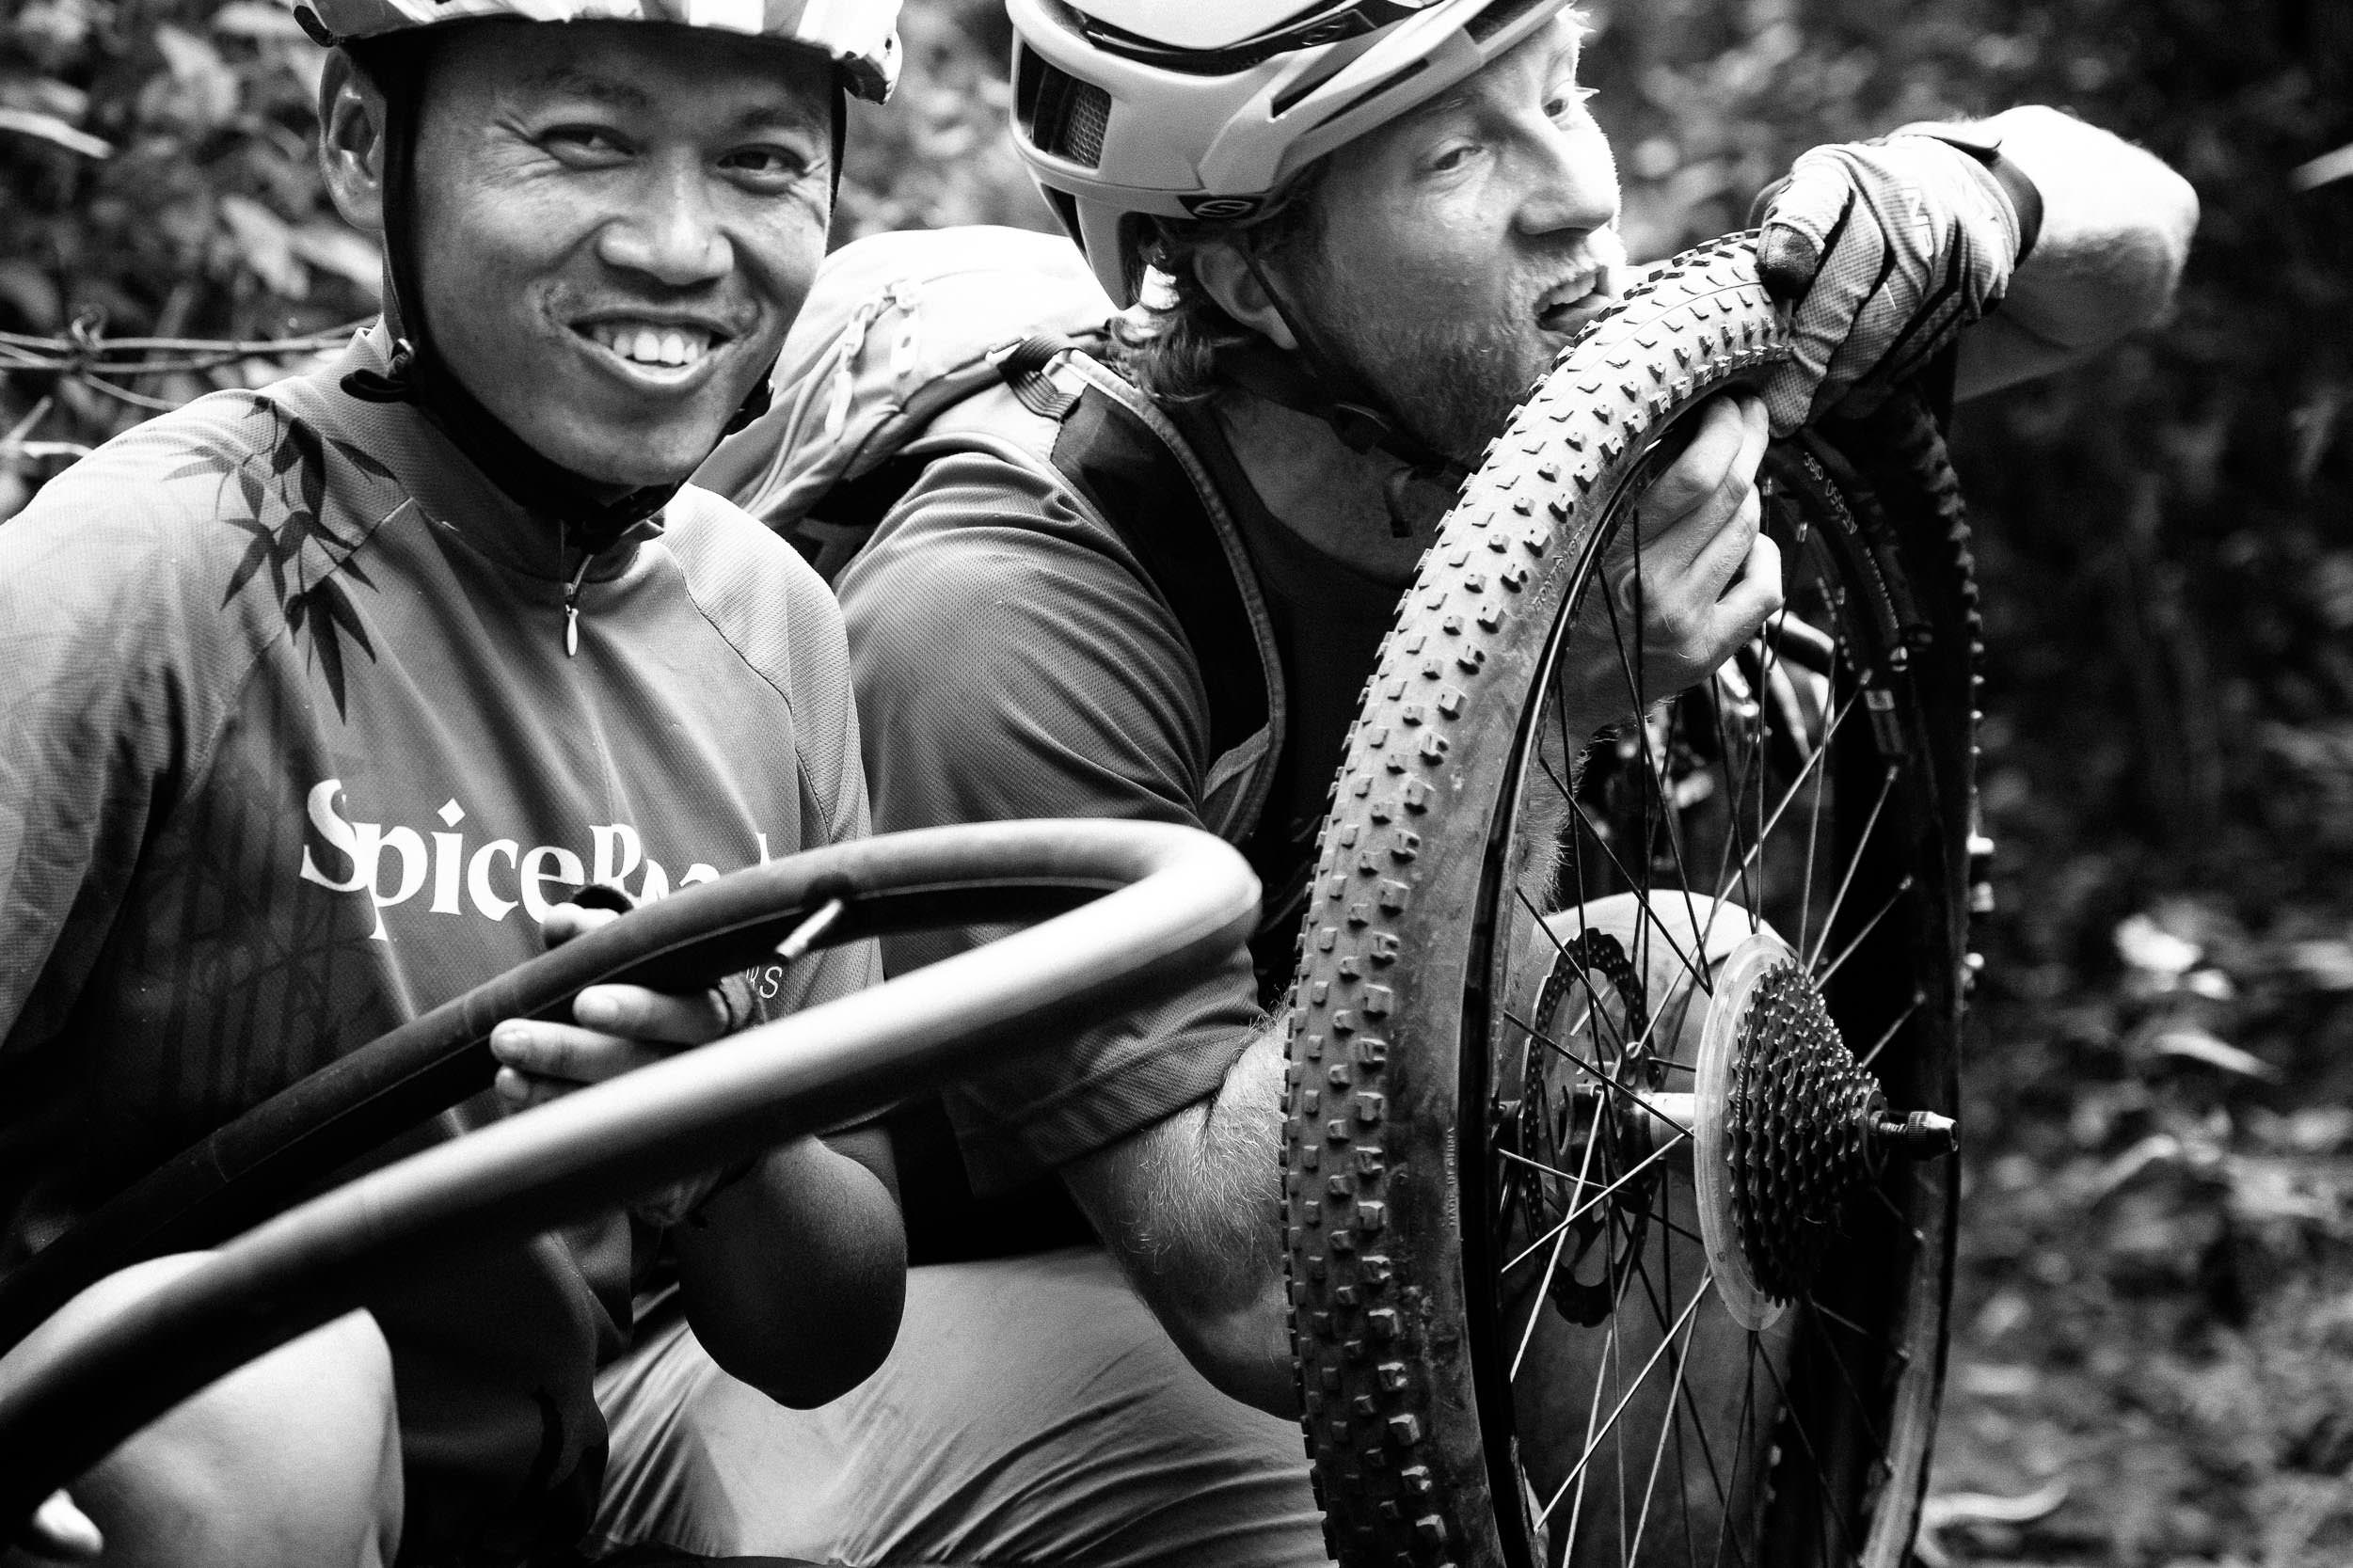 Andrew Whiteford and Win Jalawin fix a flat tire on the single track in the jungle near Ban Sop Gai, Thailand